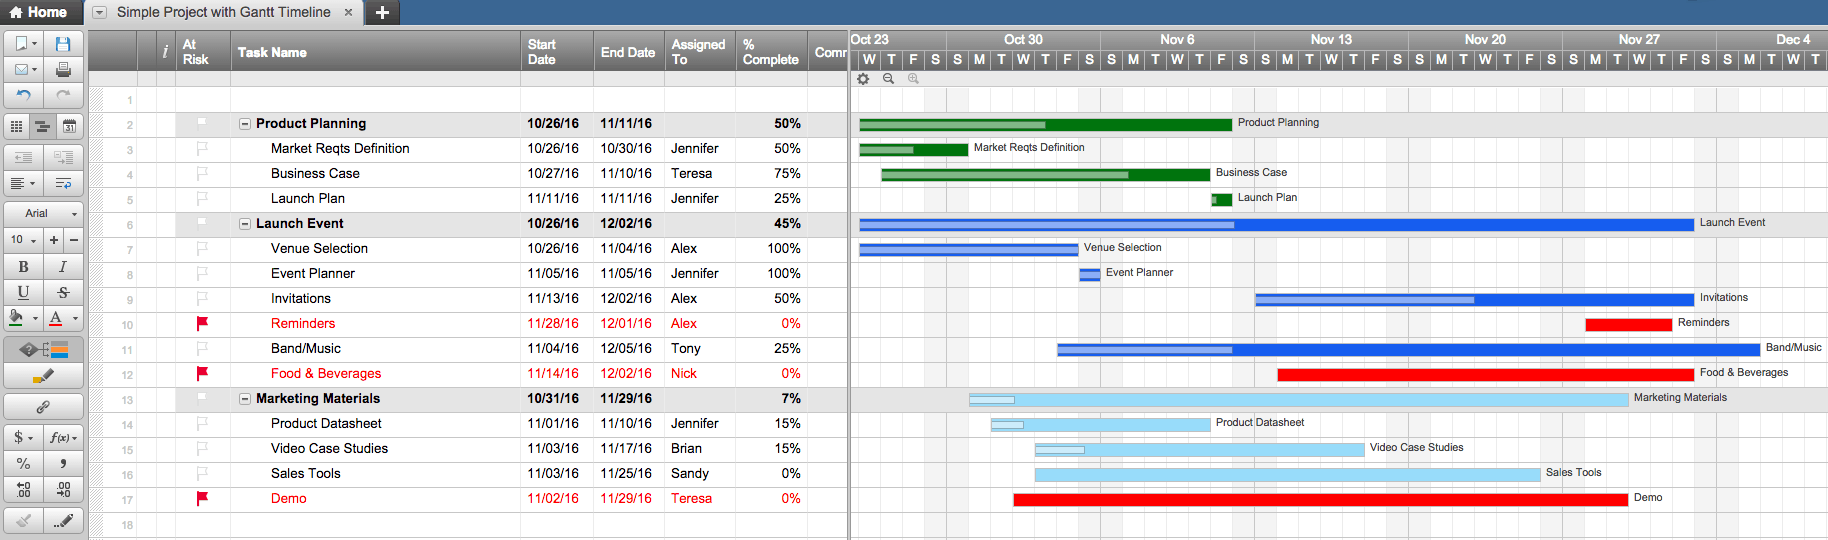 Assign Tasks To Certain Team Members In The Assigned To Column And Convey  Progress With The % Complete Column. You Can Also Flag At-Risk Tasks In The  Far